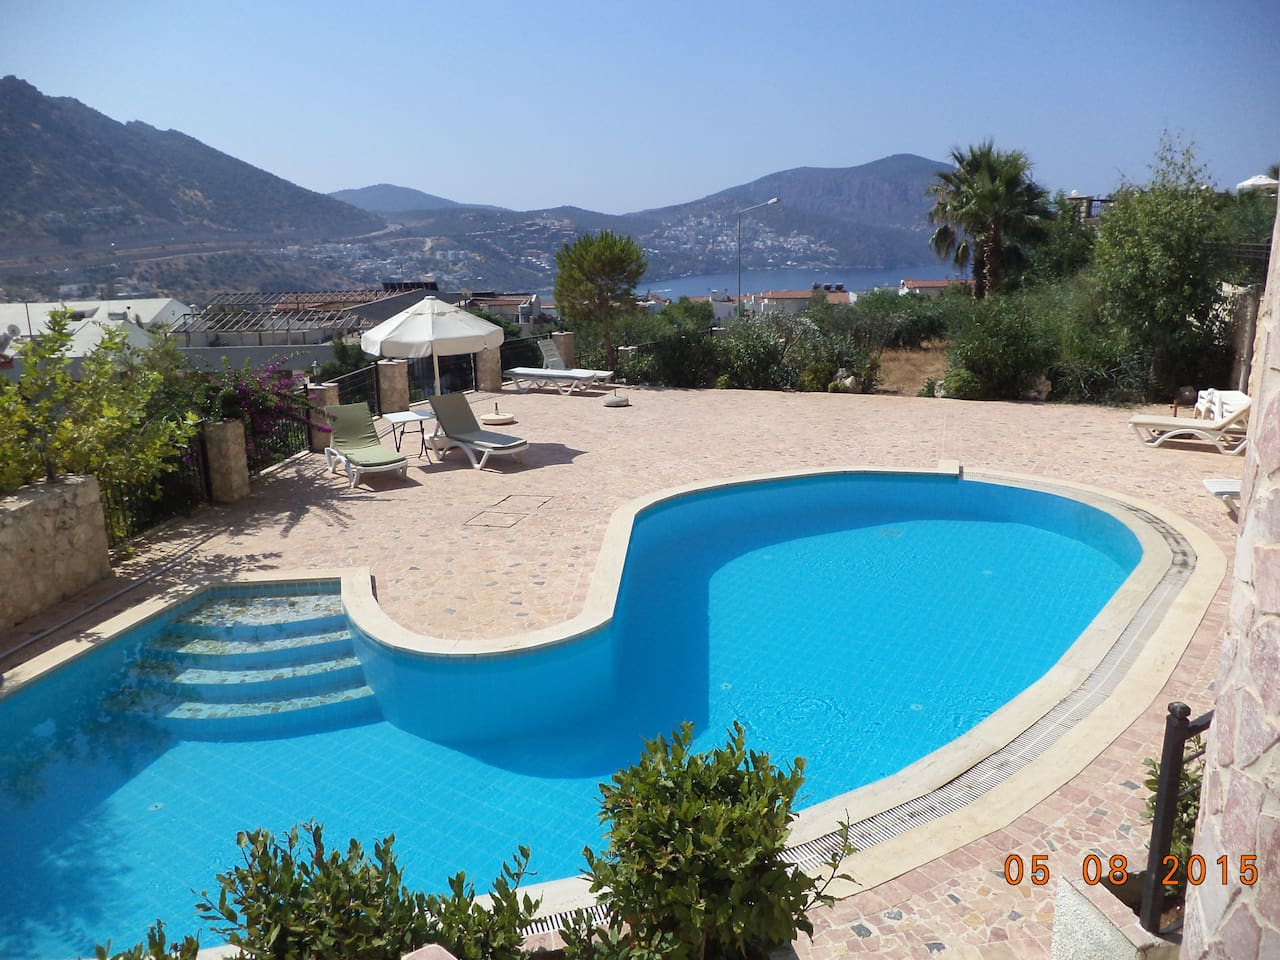 A place in gorgeous Kalkan-Turkey